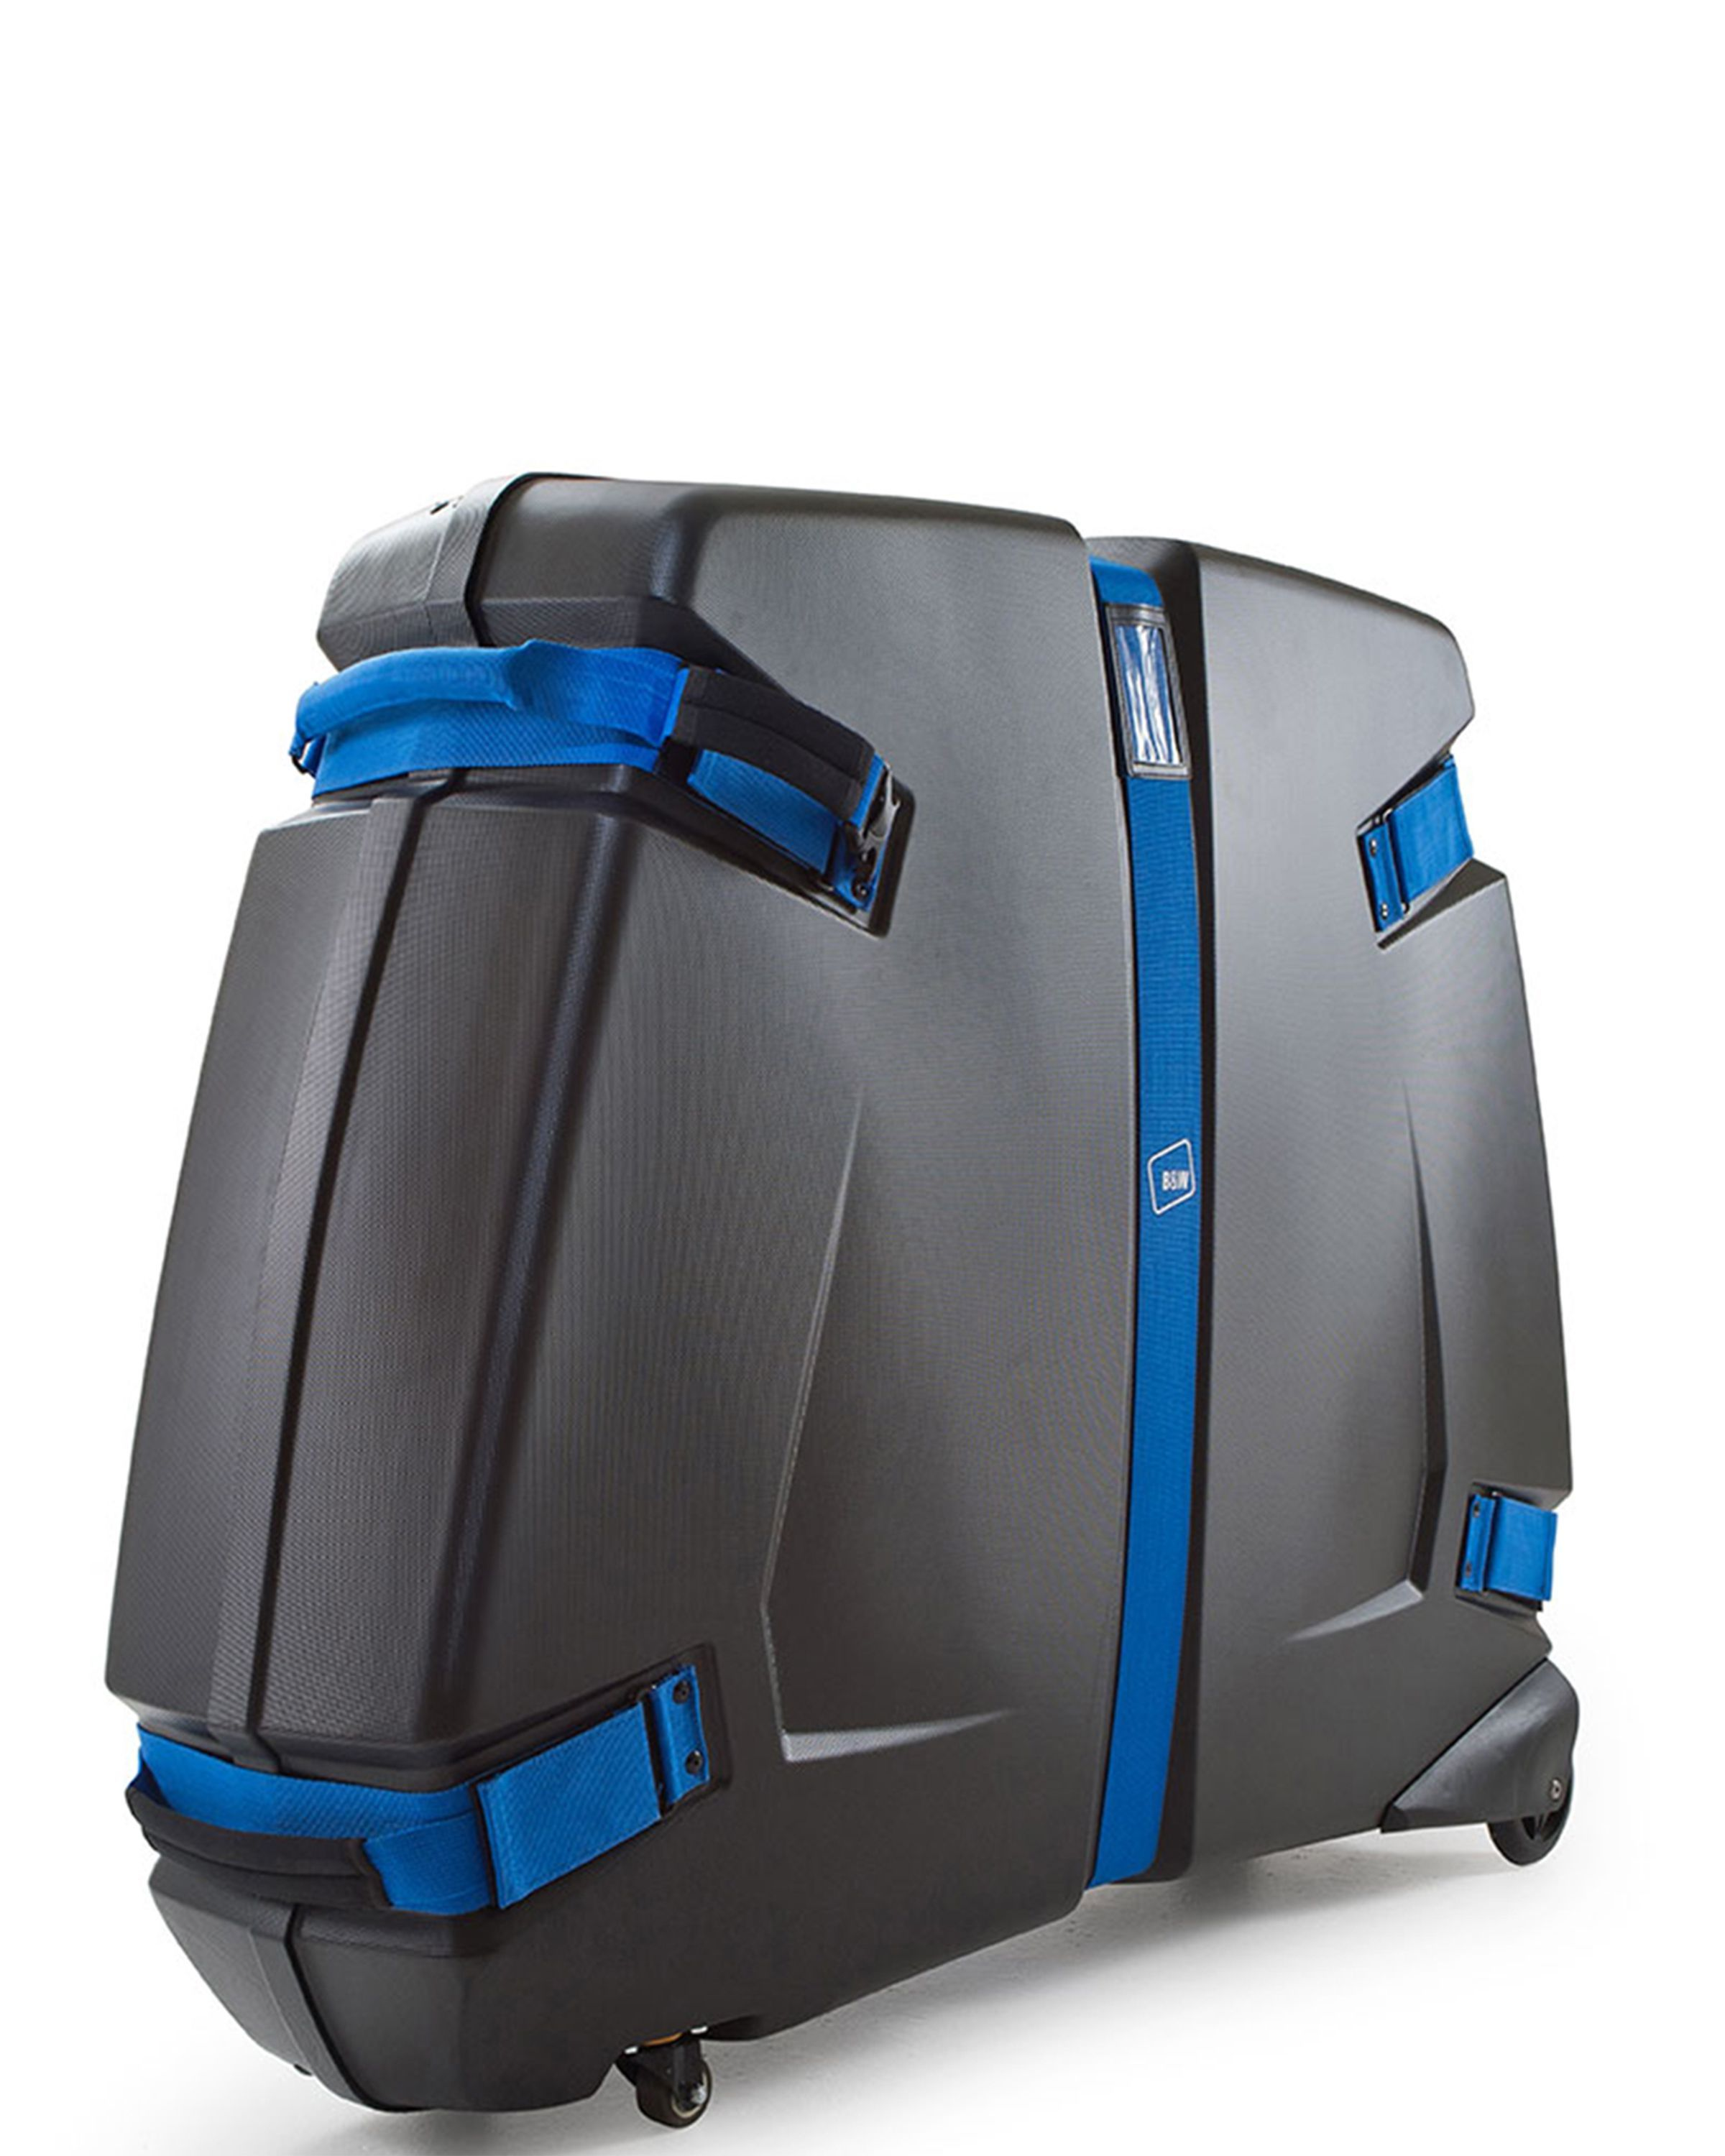 8cd4e8c44790 Best Travel Cases for Bikes – Bike Bags and Boxes 2019